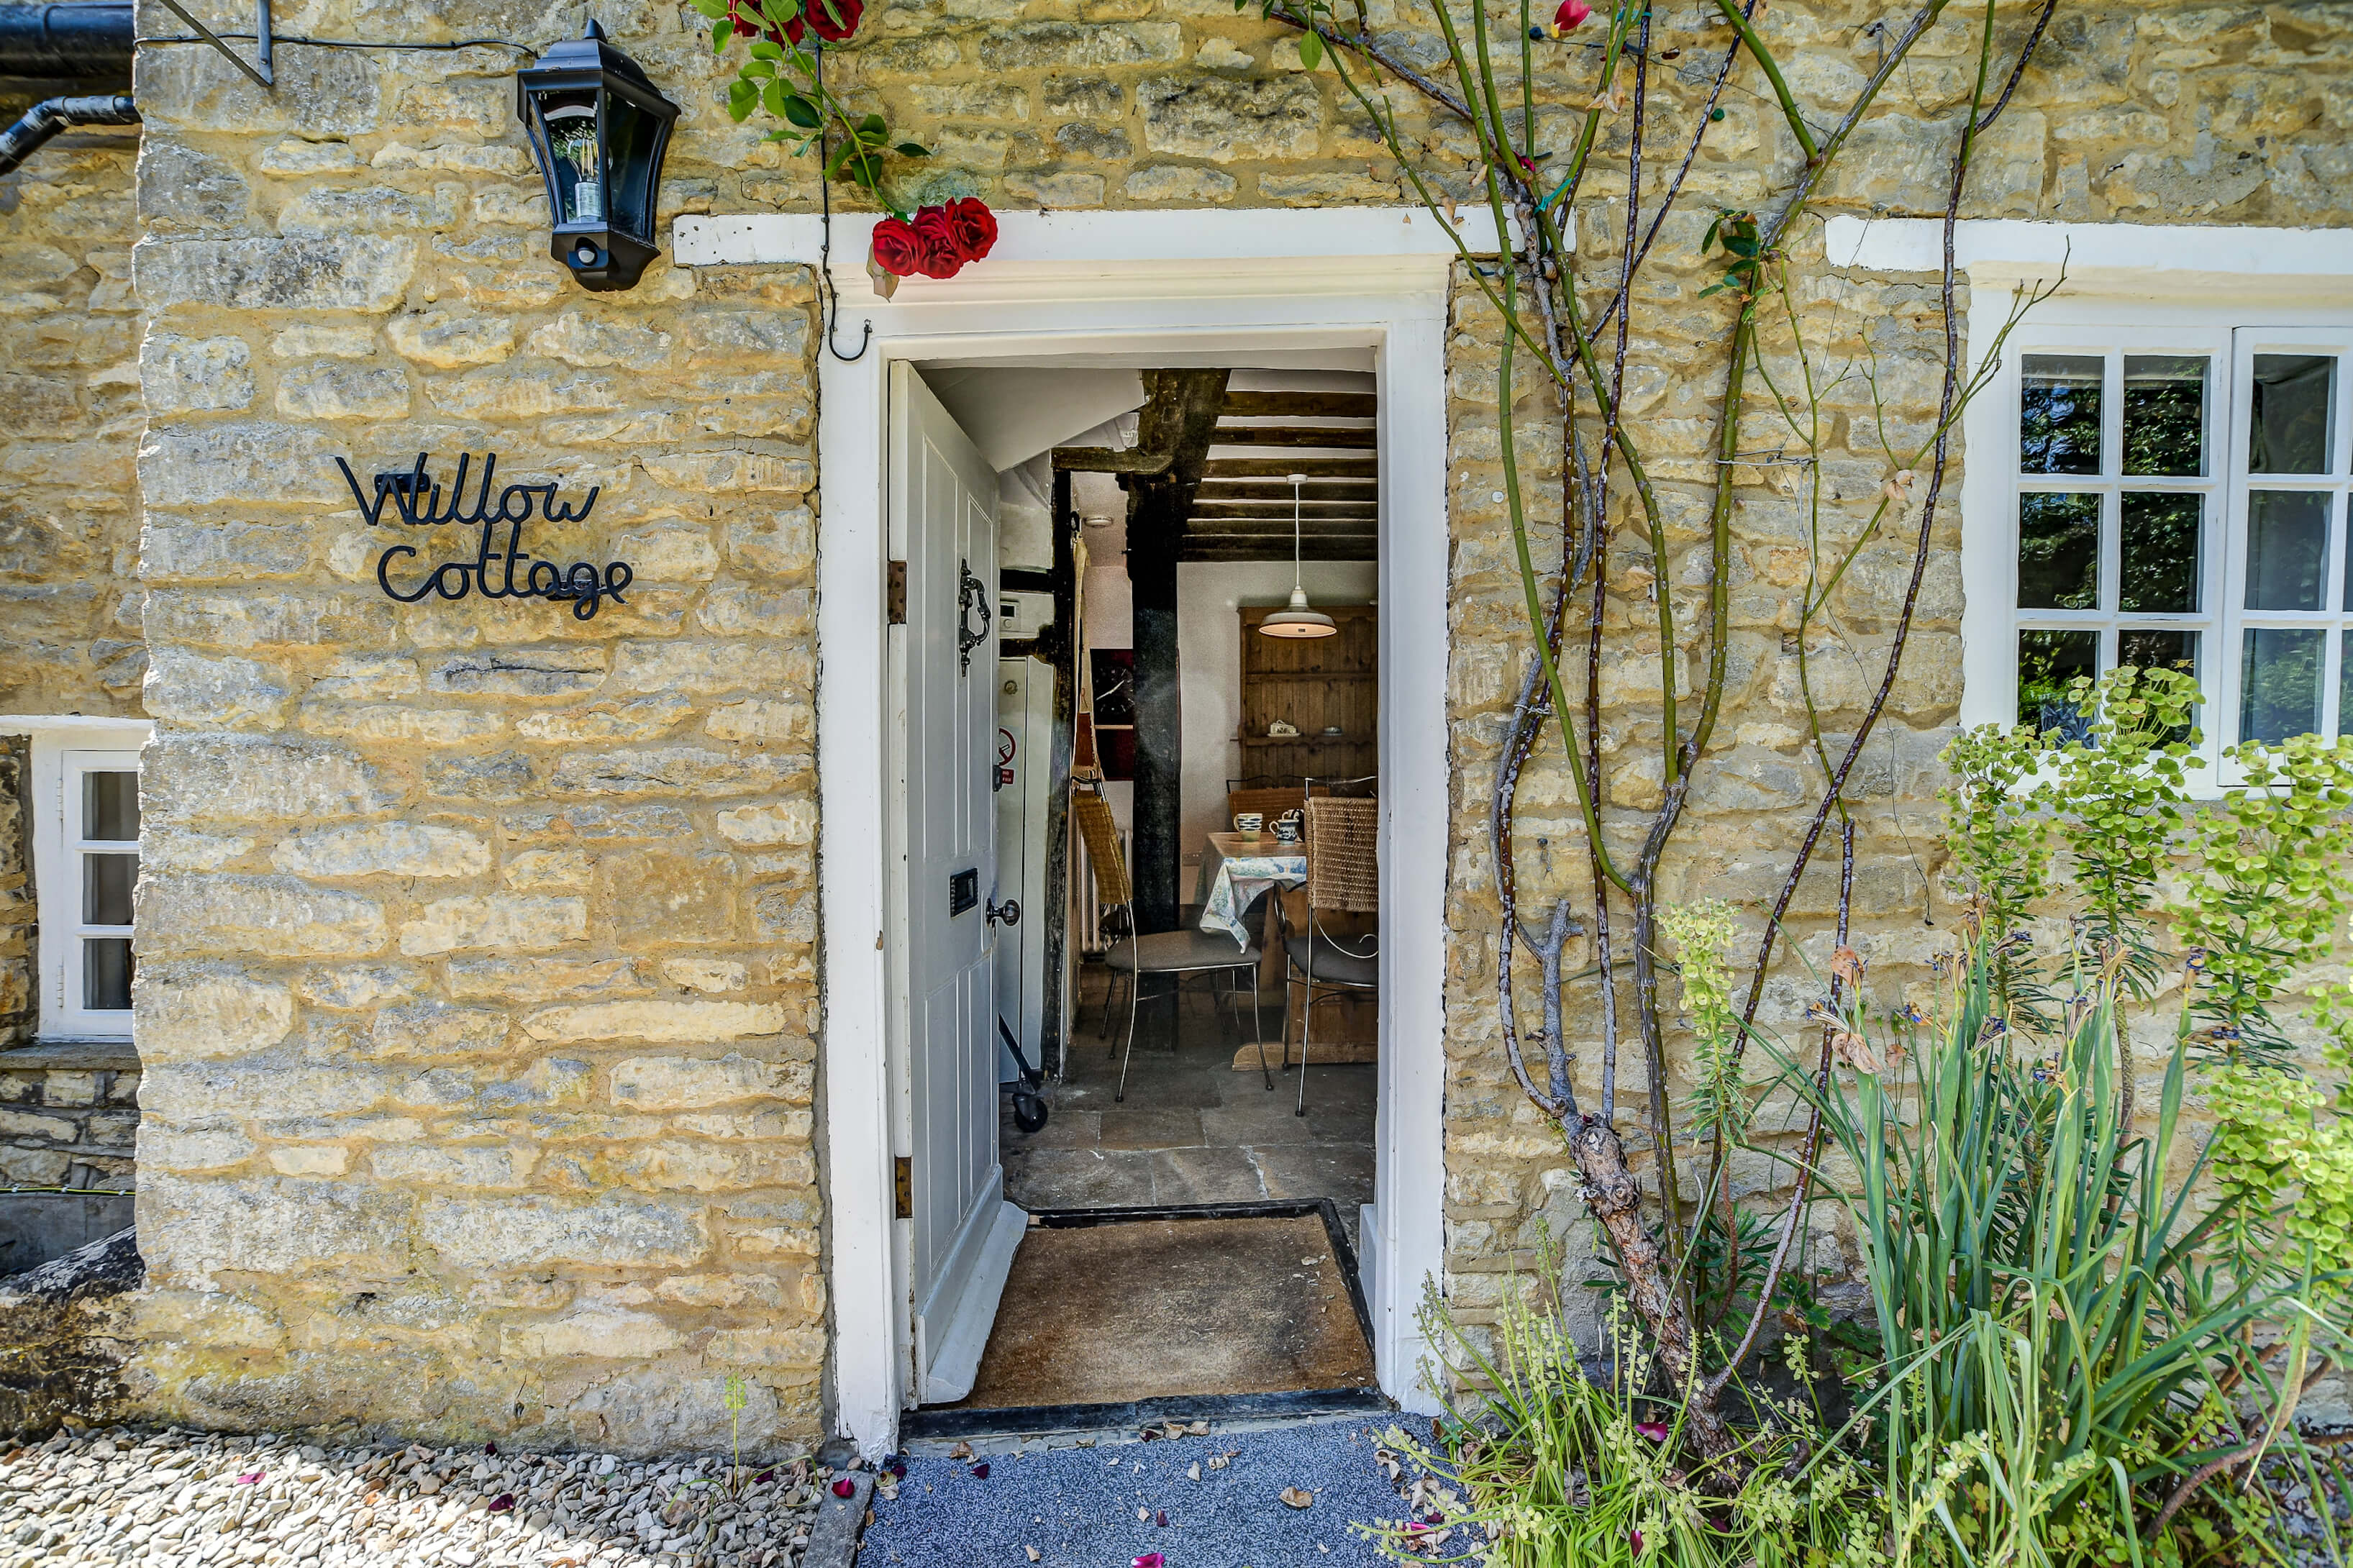 Willow Cottage 1738 39 40